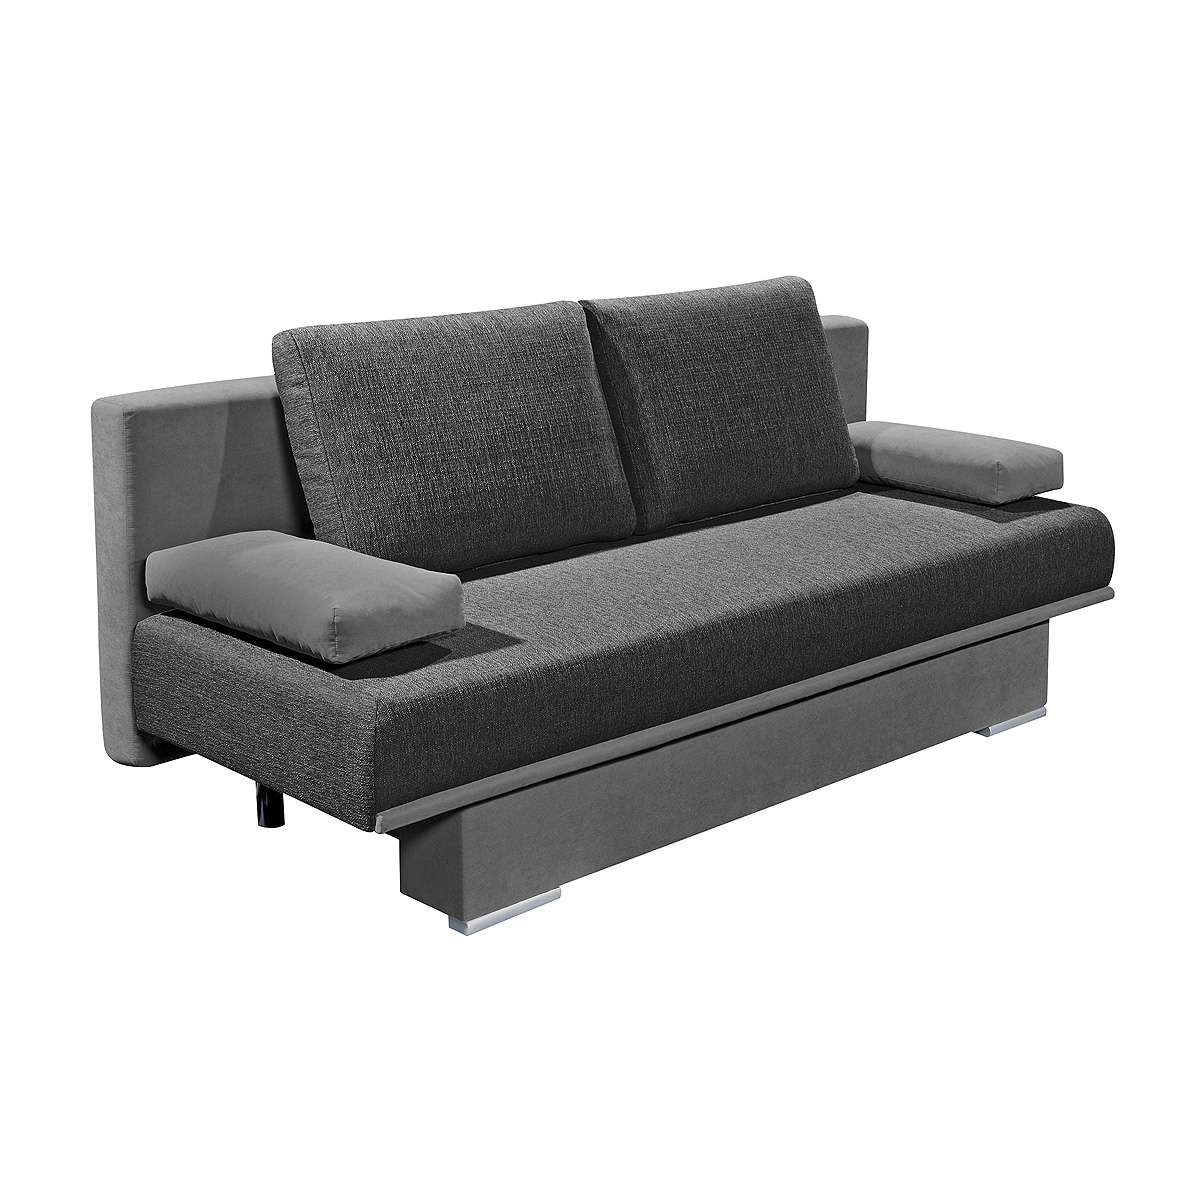 schlafsofa sina sofa funktionssofa mit bettkasten und kissen in anthrazit ebay. Black Bedroom Furniture Sets. Home Design Ideas